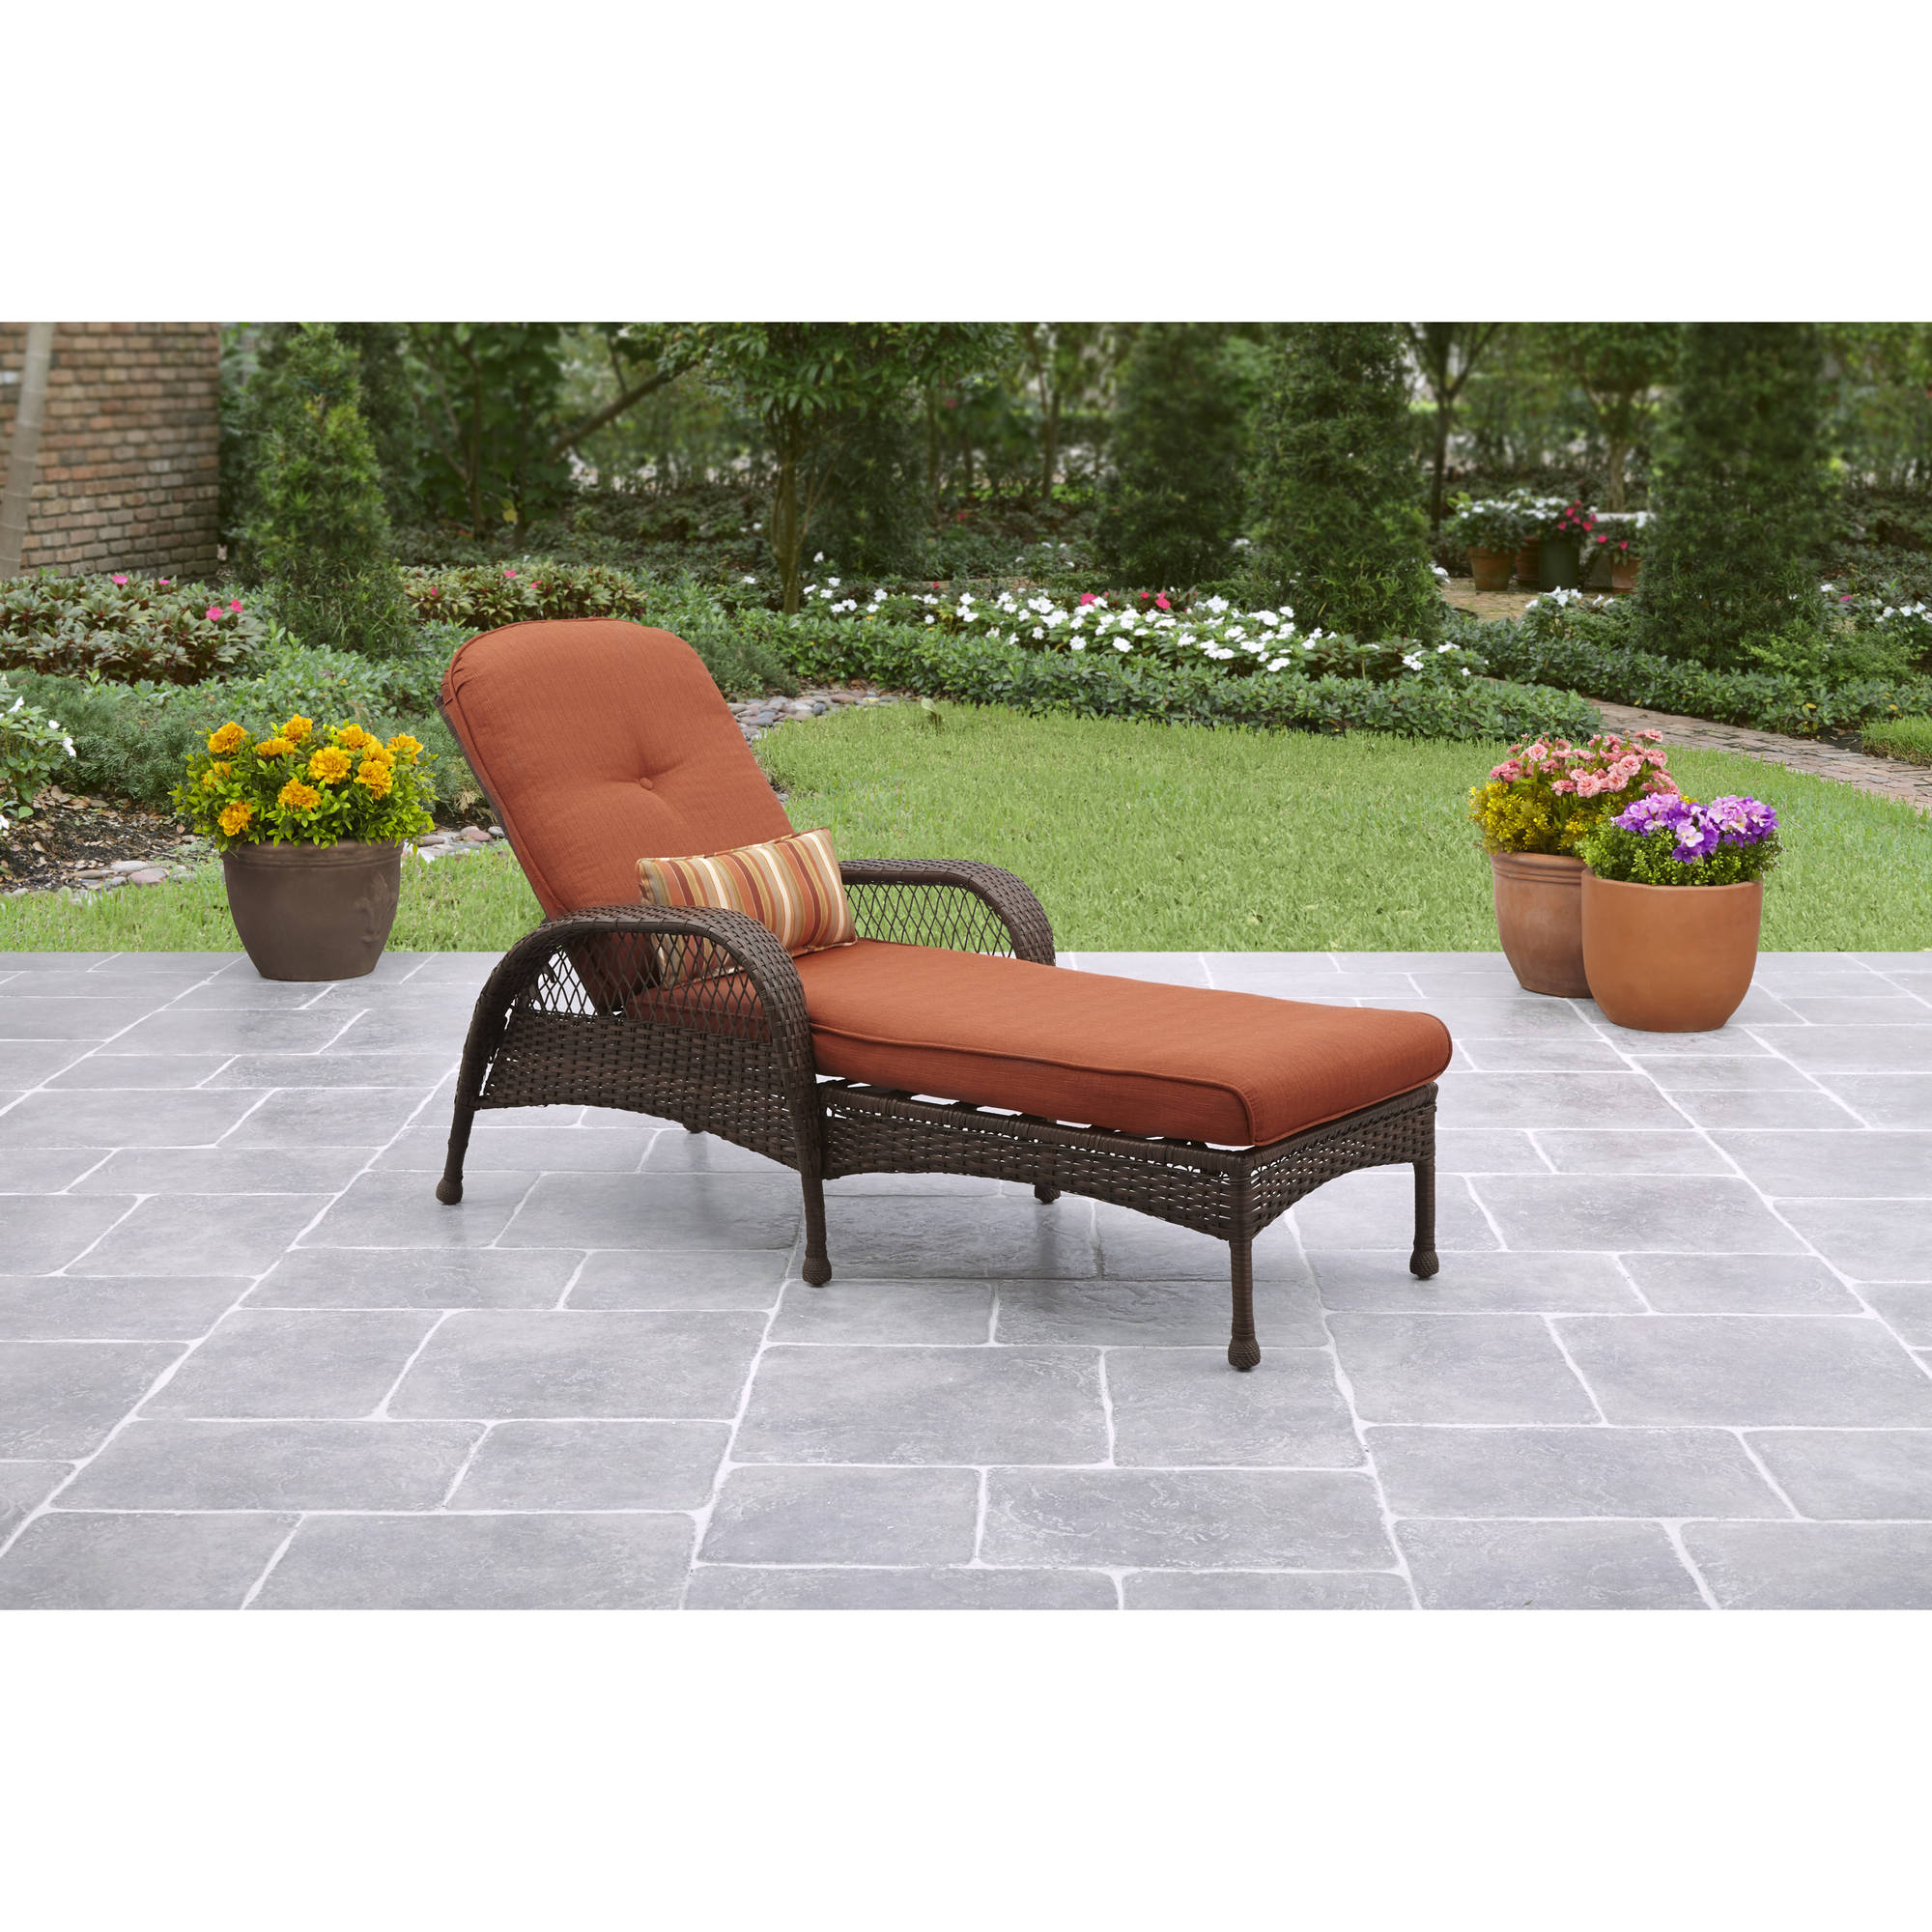 Better Homes and Gardens Azalea Ridge Chaise Lounge